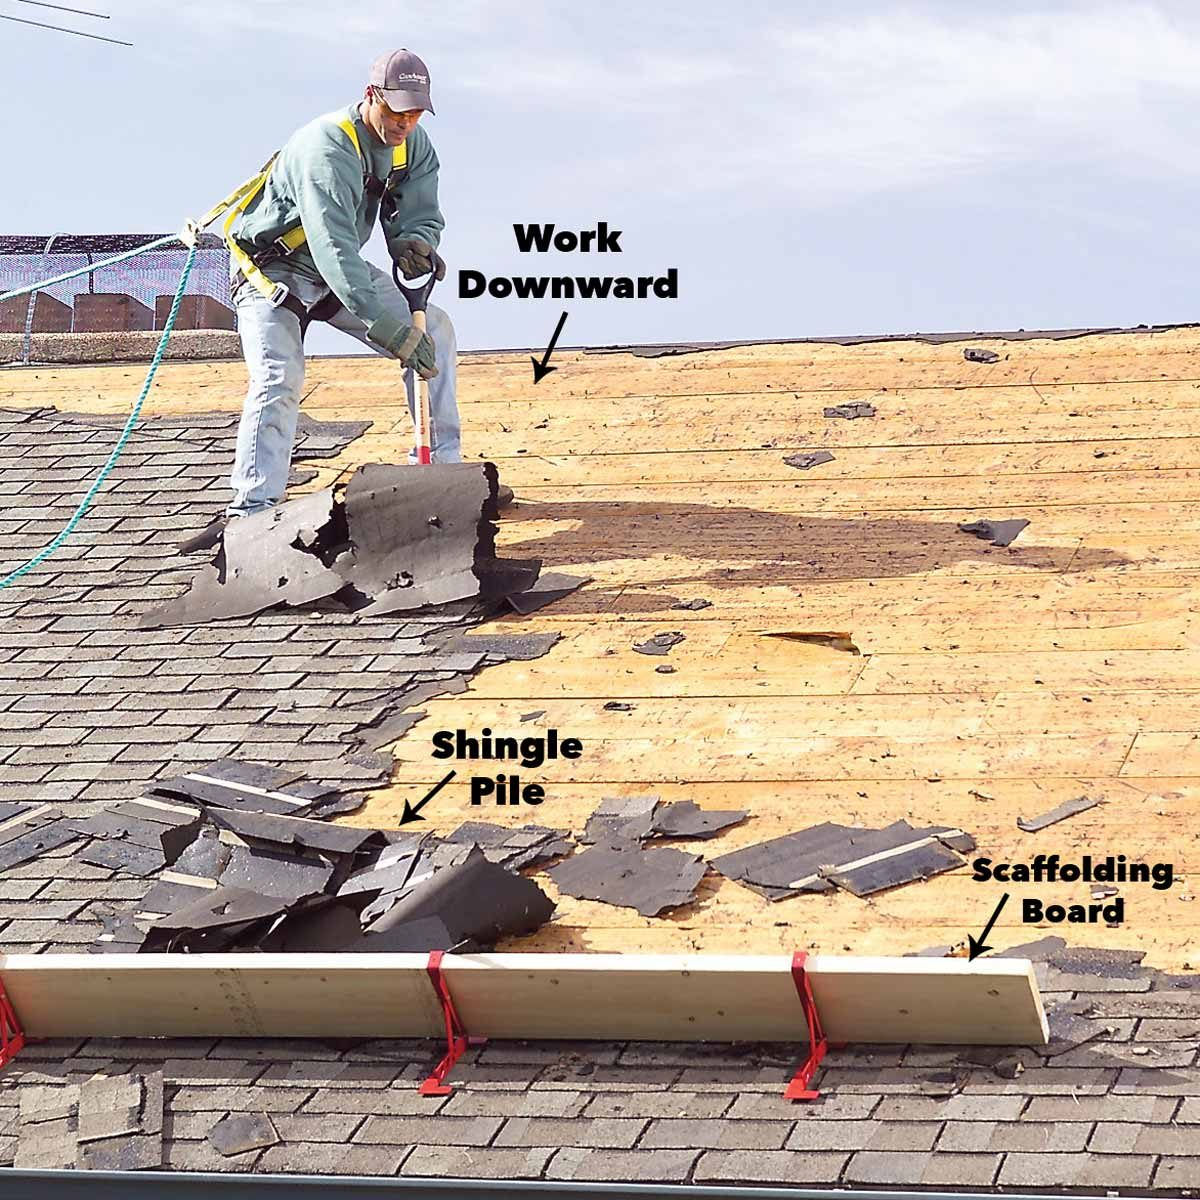 Work downward remove roof shingles